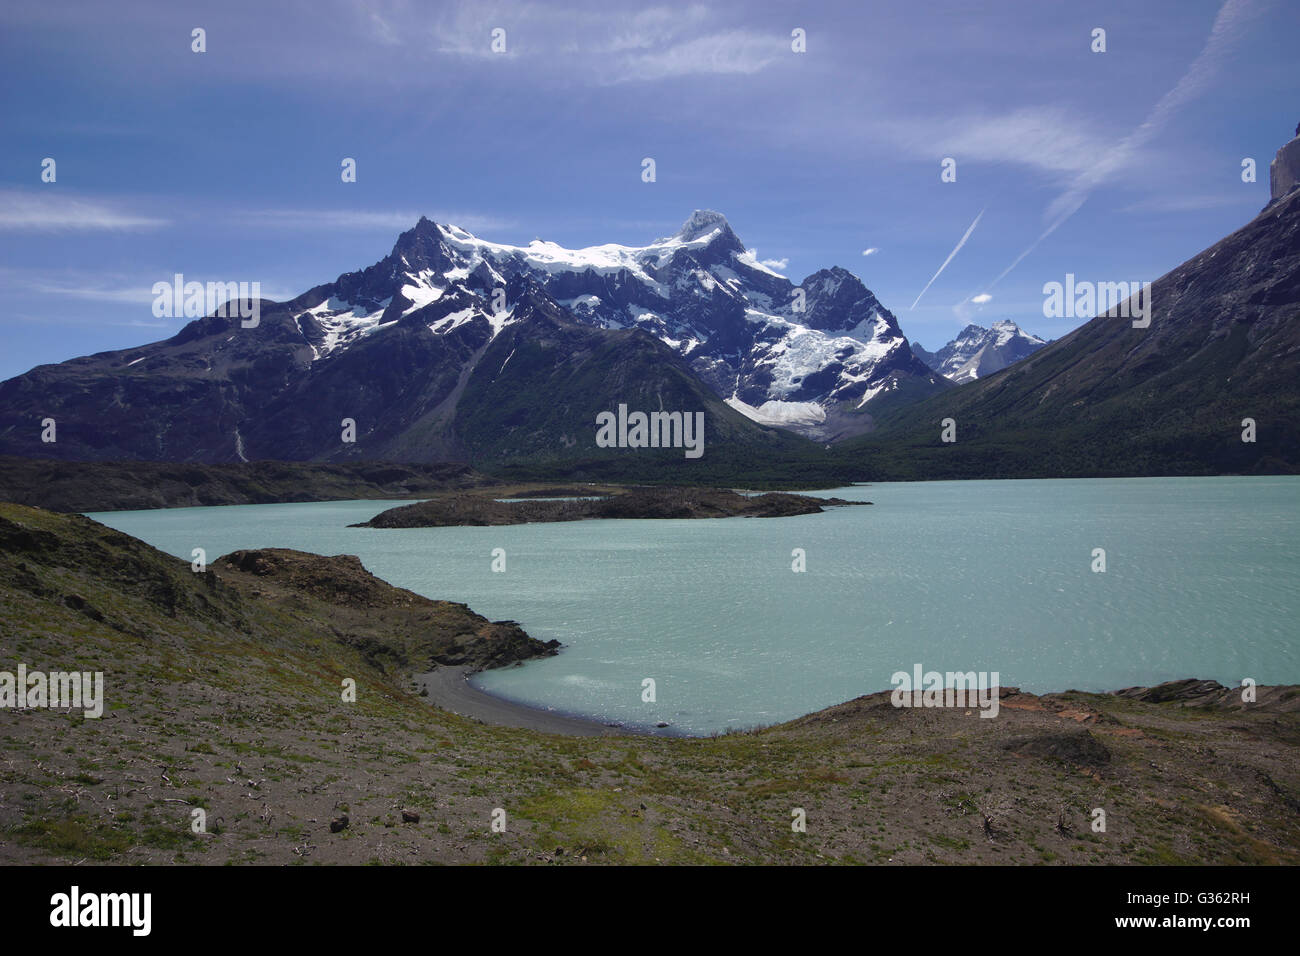 Paine Grande and Lago Nordenskjöld from Mirador Cuernos, Torres del Paine National Park, Chile - Stock Image